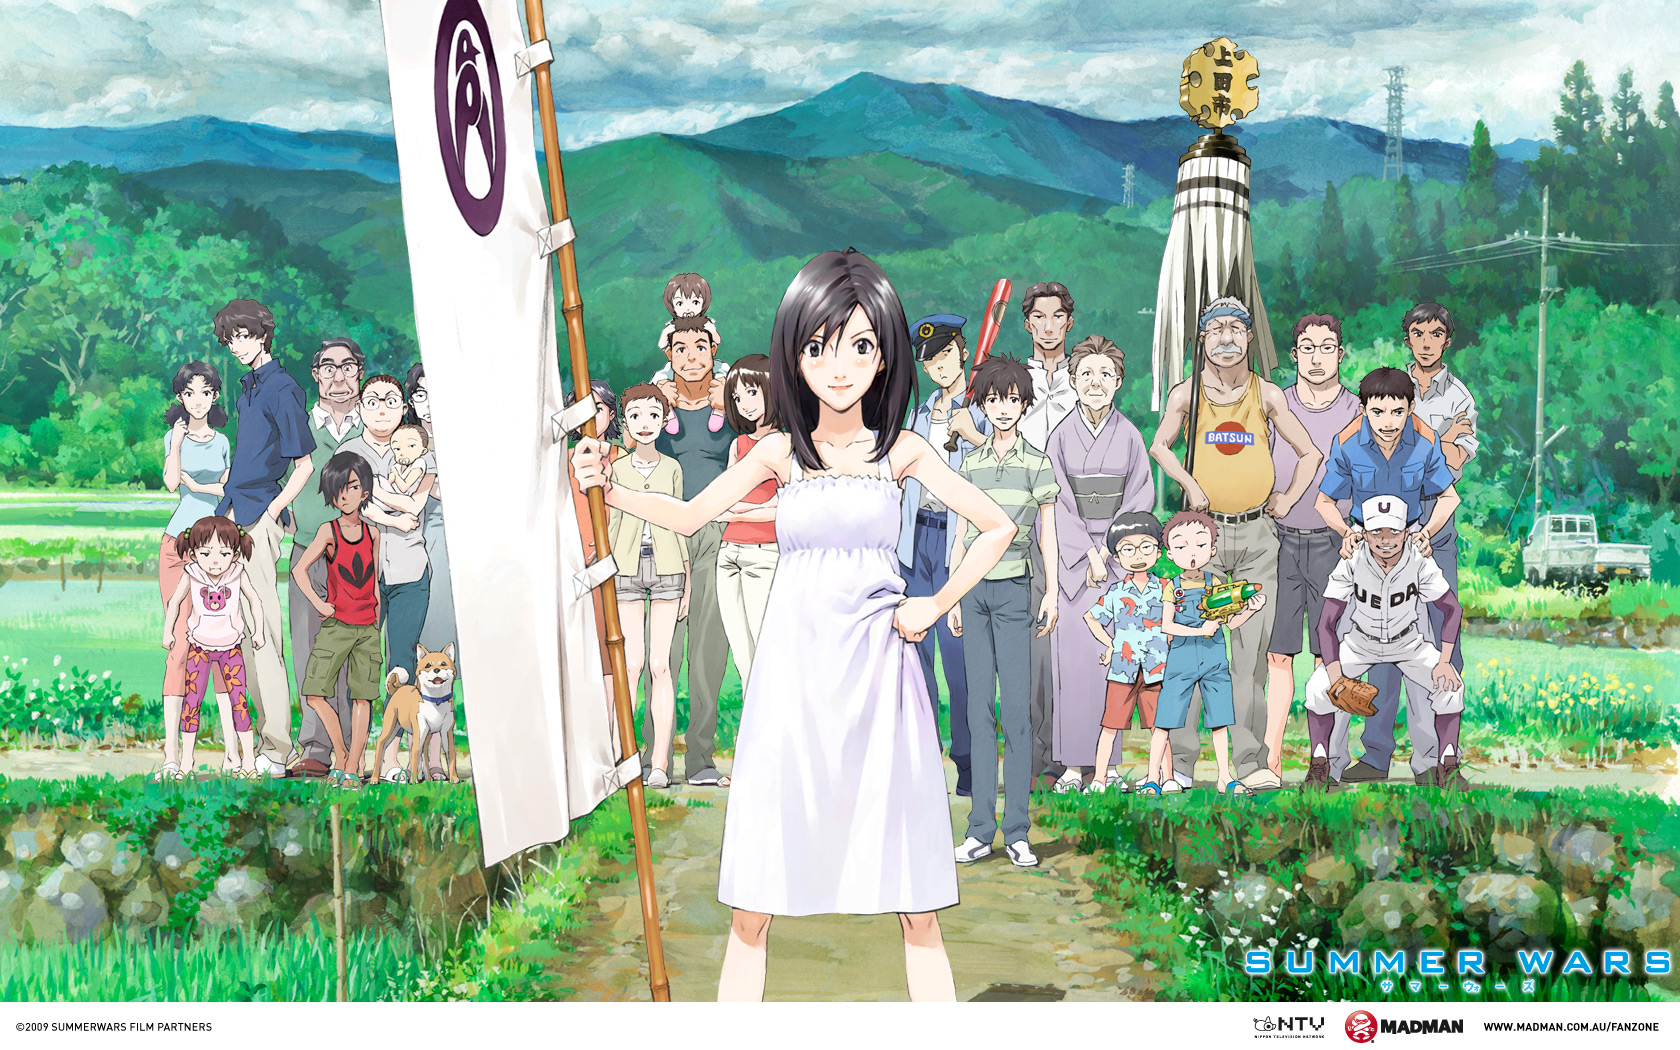 Summer Wars Wallpapers Anime Hq Summer Wars Pictures 4k Wallpapers 2019